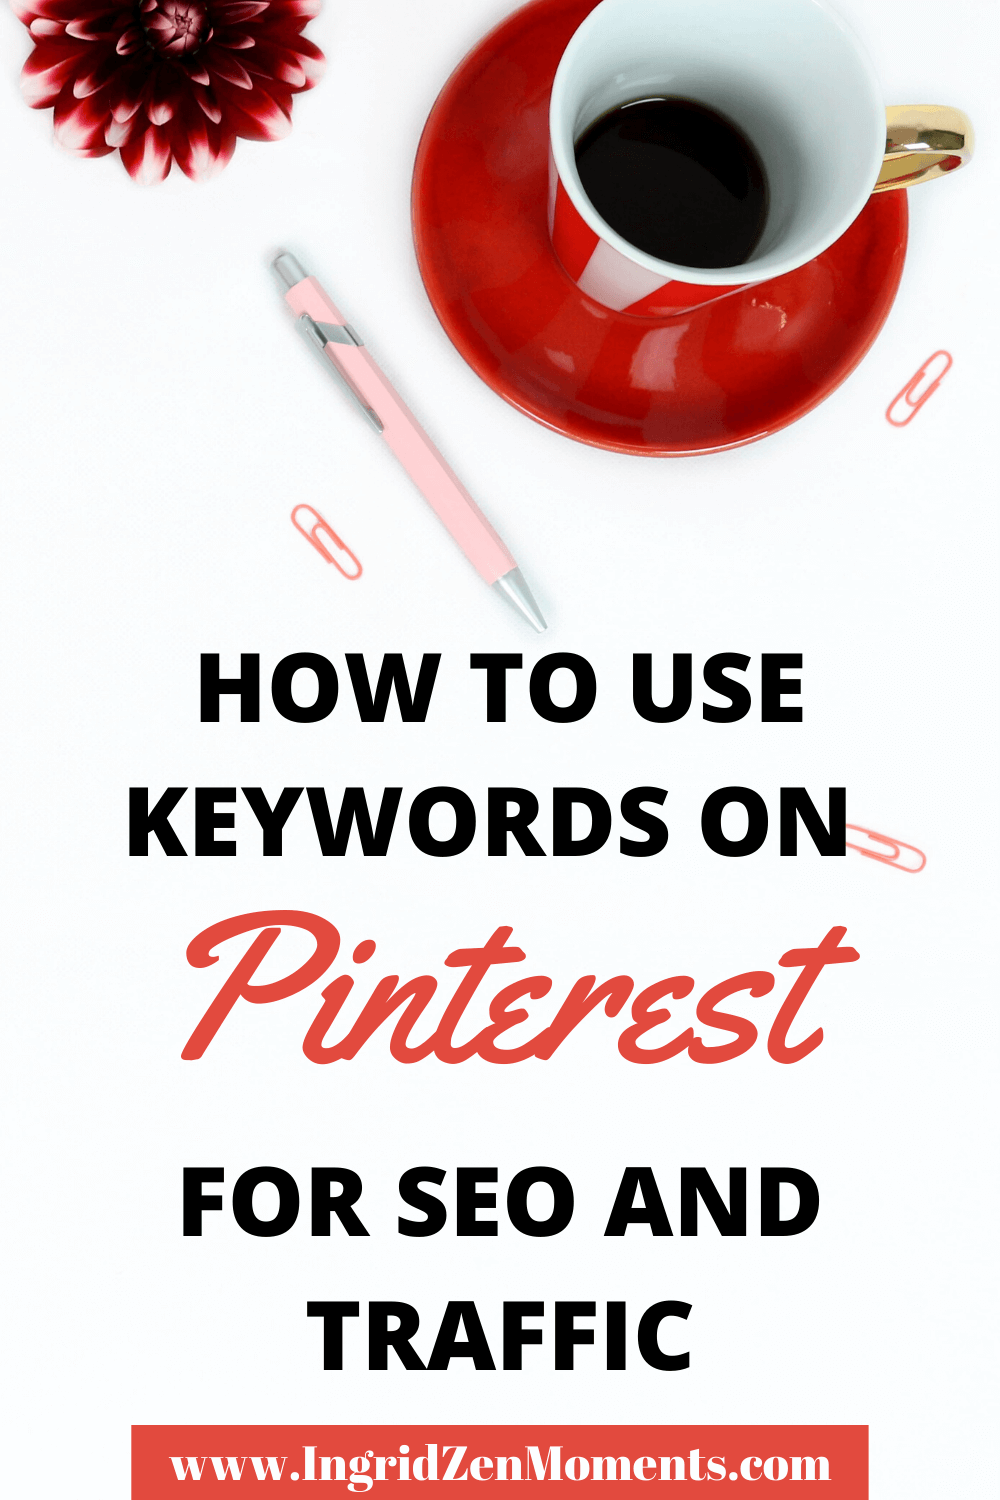 Read the complete guide of Pinterest keywords and everything you need to know in order to boost organic traffic on Pinterest. Get the best Pinterest marketing strategy, Pinterest tips, Pinterest SEO, Pinterest for bloggers and business, how to use Tailwind, how to find Pinterest keywords and rank for them. #pinterest #keywords #seo #marketing